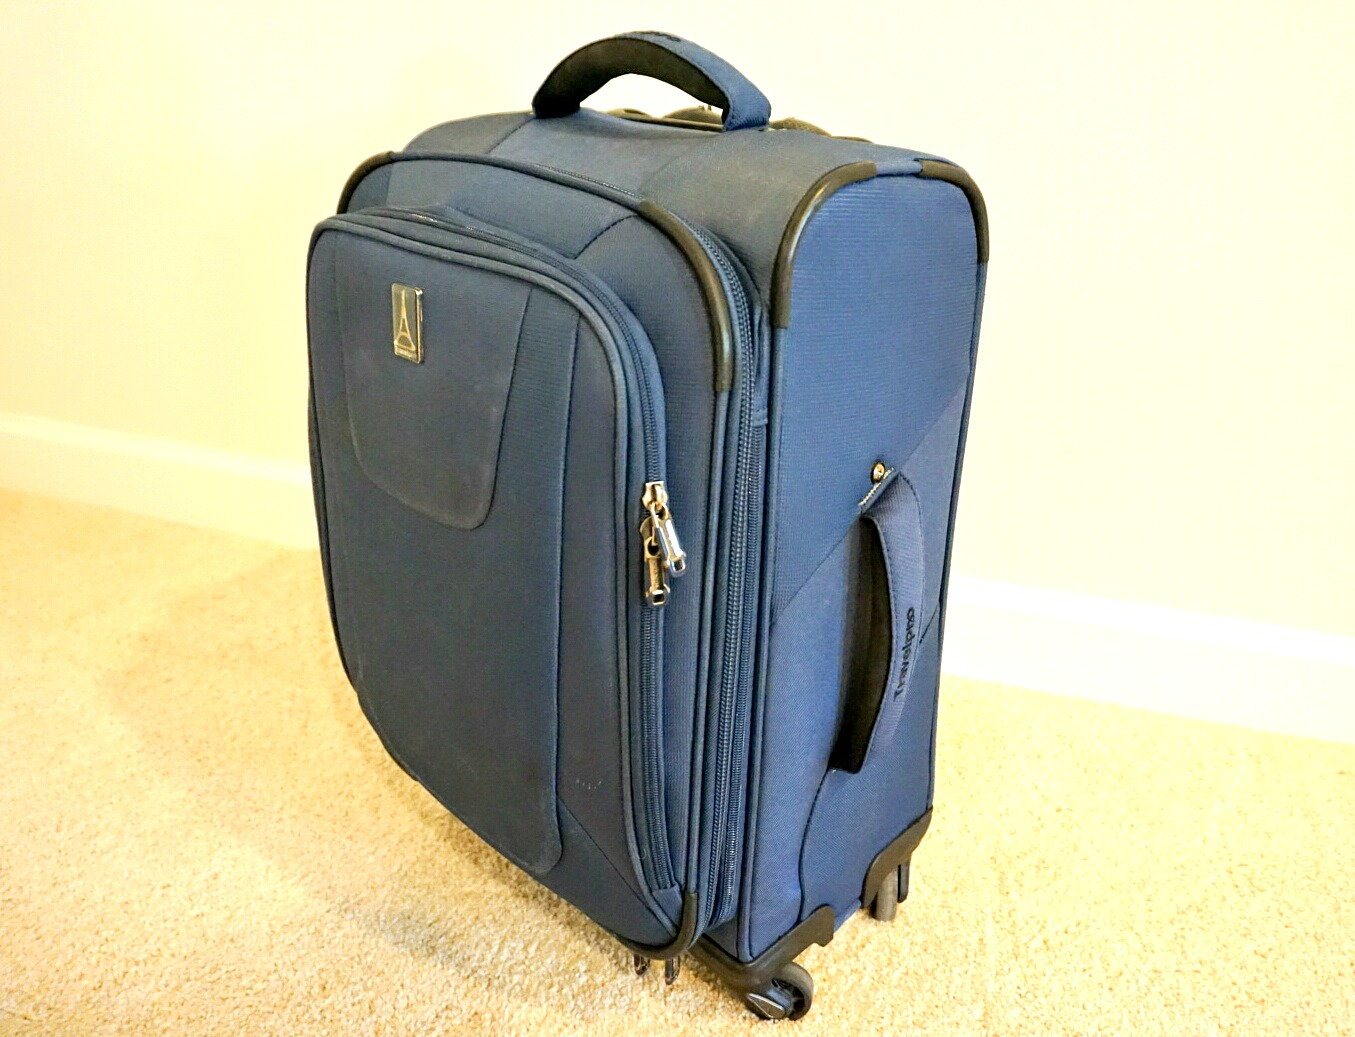 travel-pro-maxlite-review